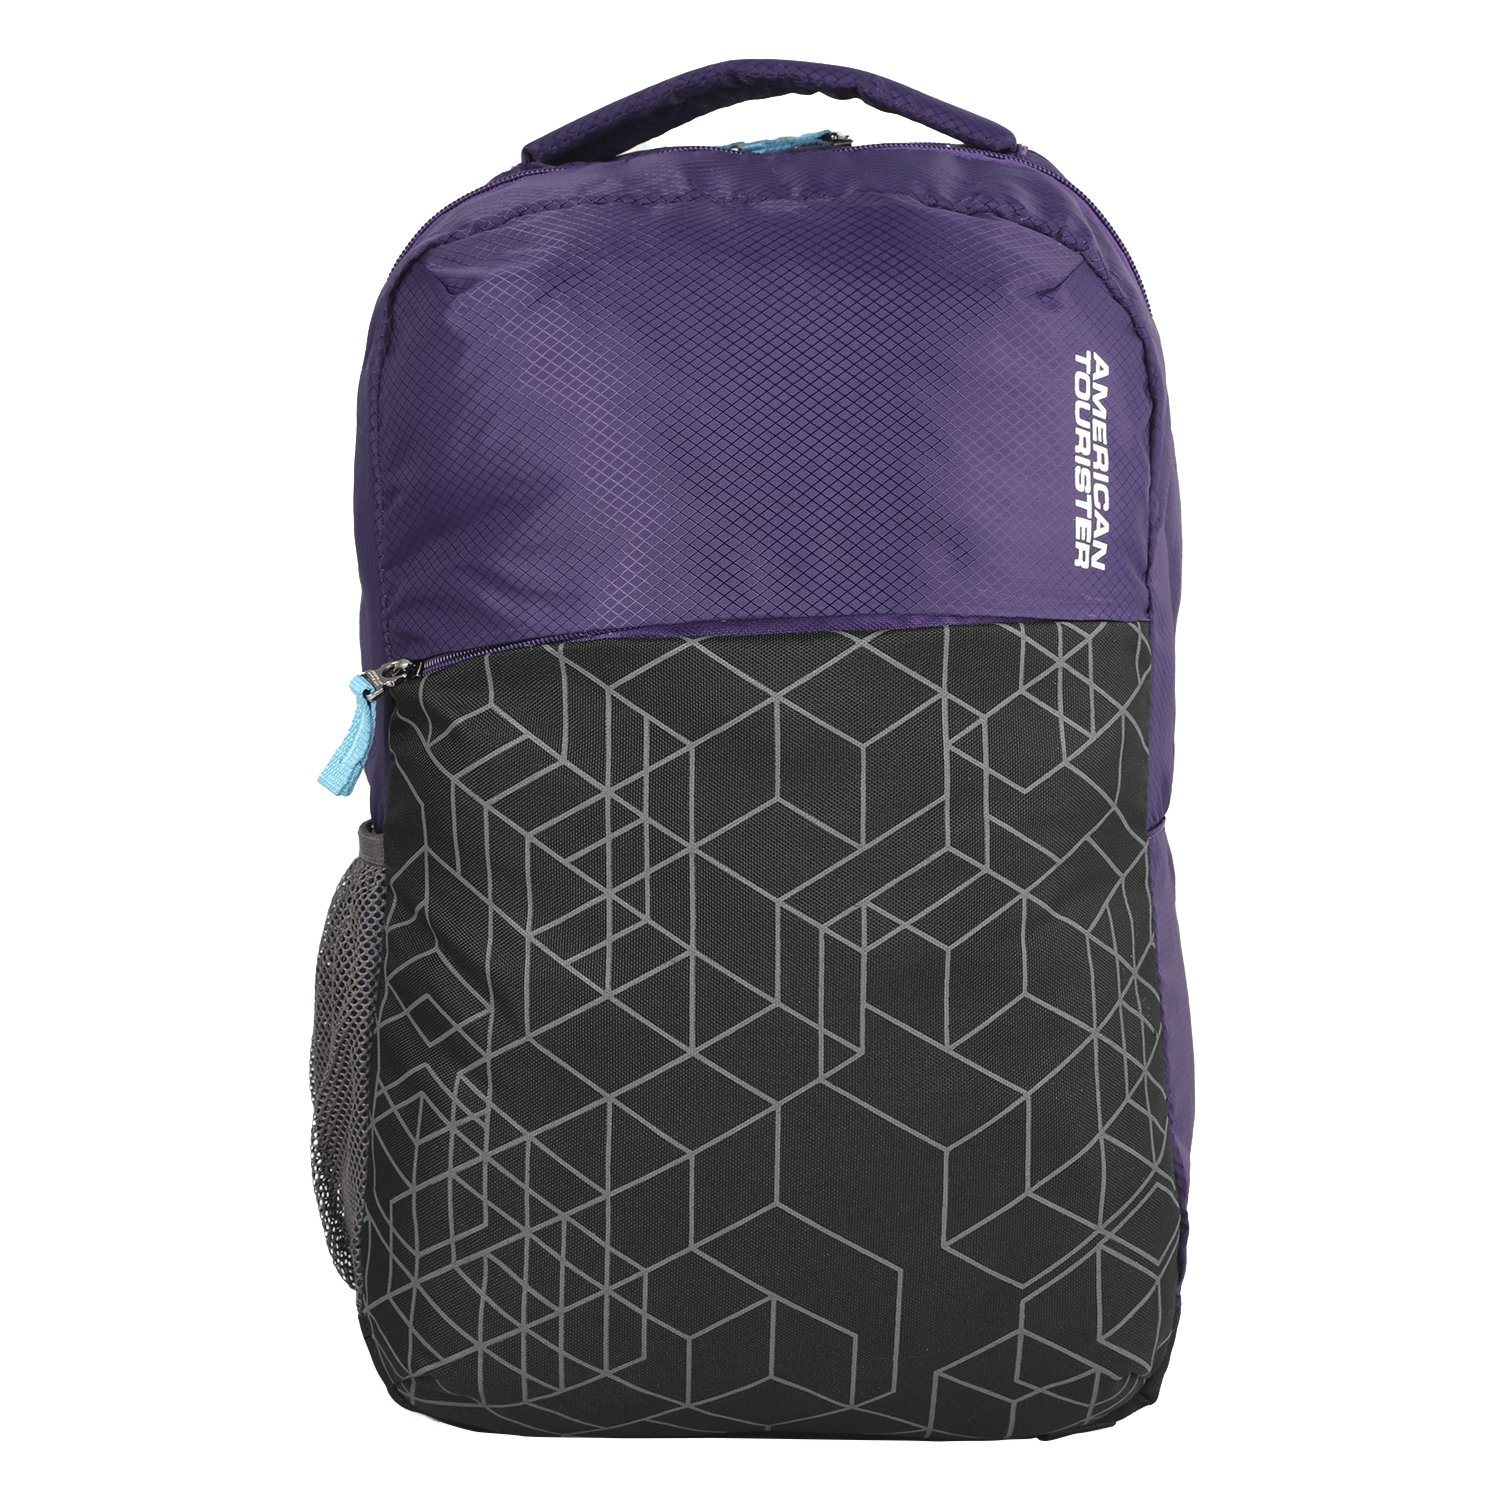 American Tourister Hoodie Unisex Backpack